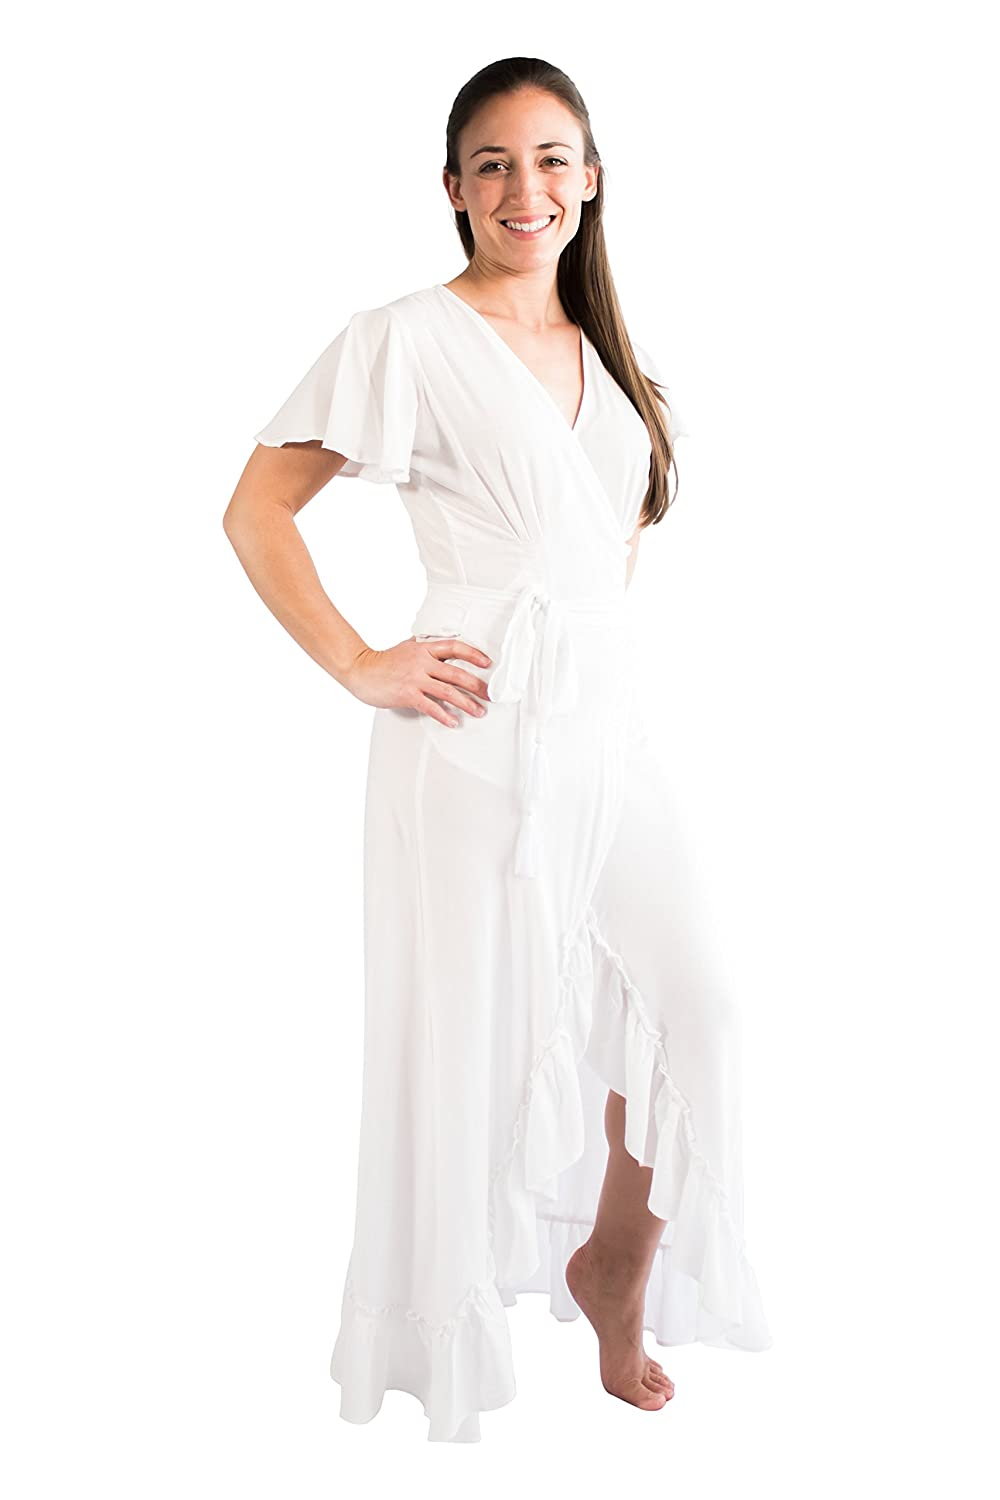 32698b09d60d PIYOGA Women s Goddess Maxi Dress - Flowy Bohemian Short Sleeve High-Low  Wrap (Angel White) at Amazon Women s Clothing store